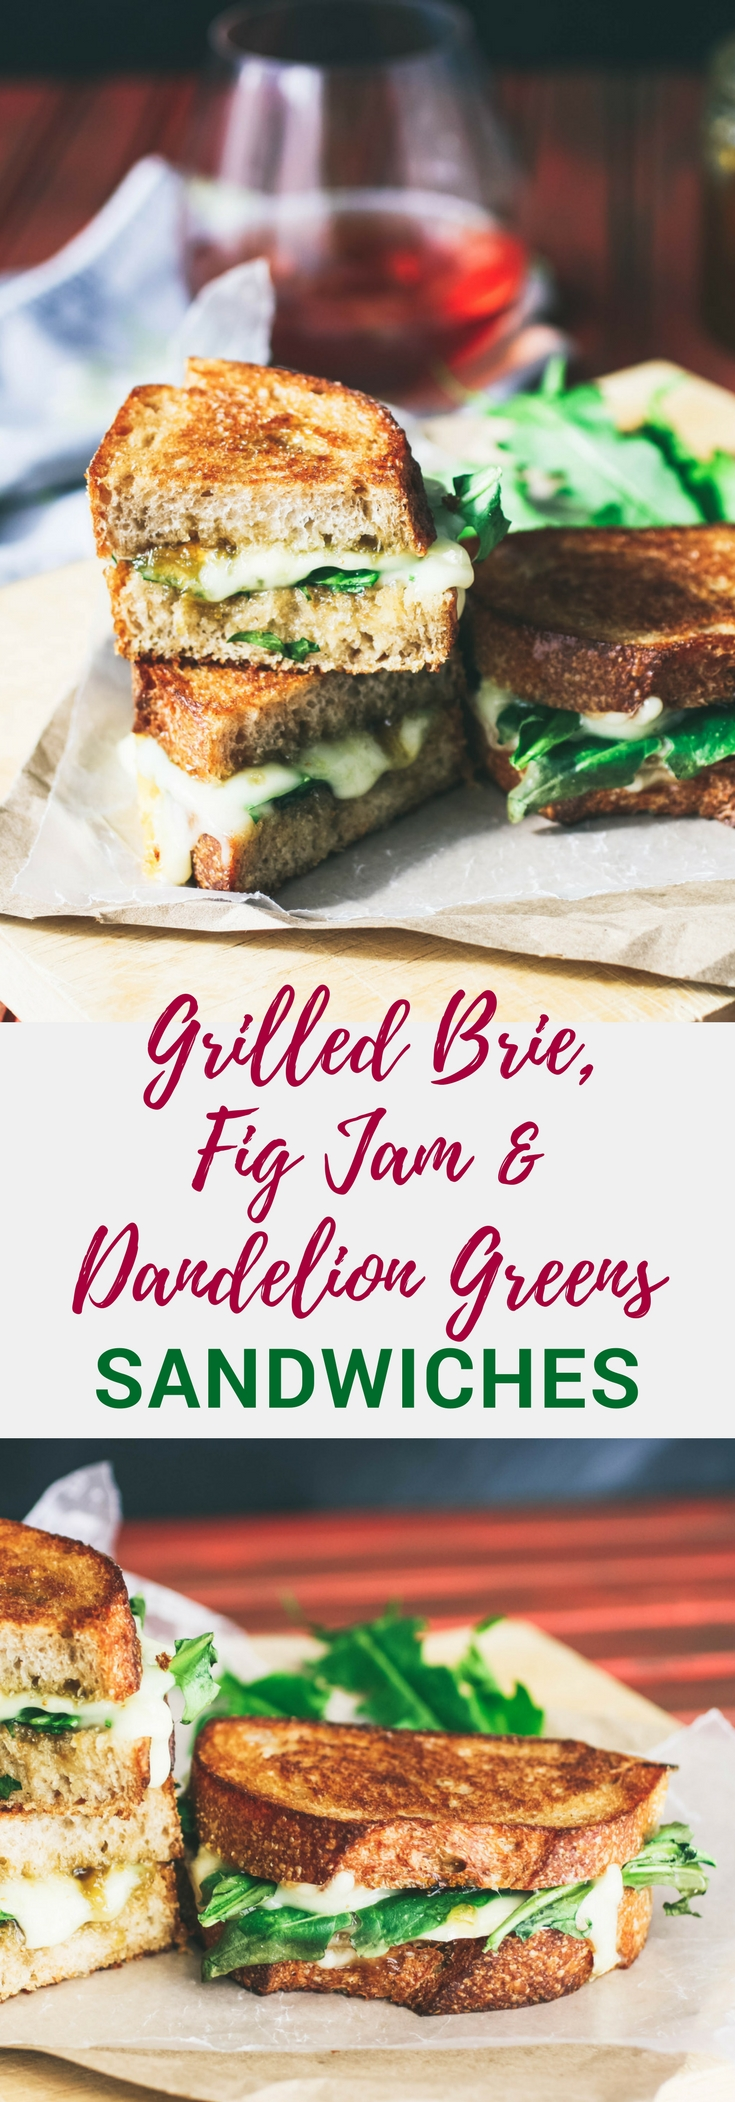 Grilled Brie, Fig Jam, and Dandelion Greens Sandwiches make a wonderful meal. You'll love how unique these Grilled Brie, Fig Jam, and Dandelion Greens Sandwiches are.